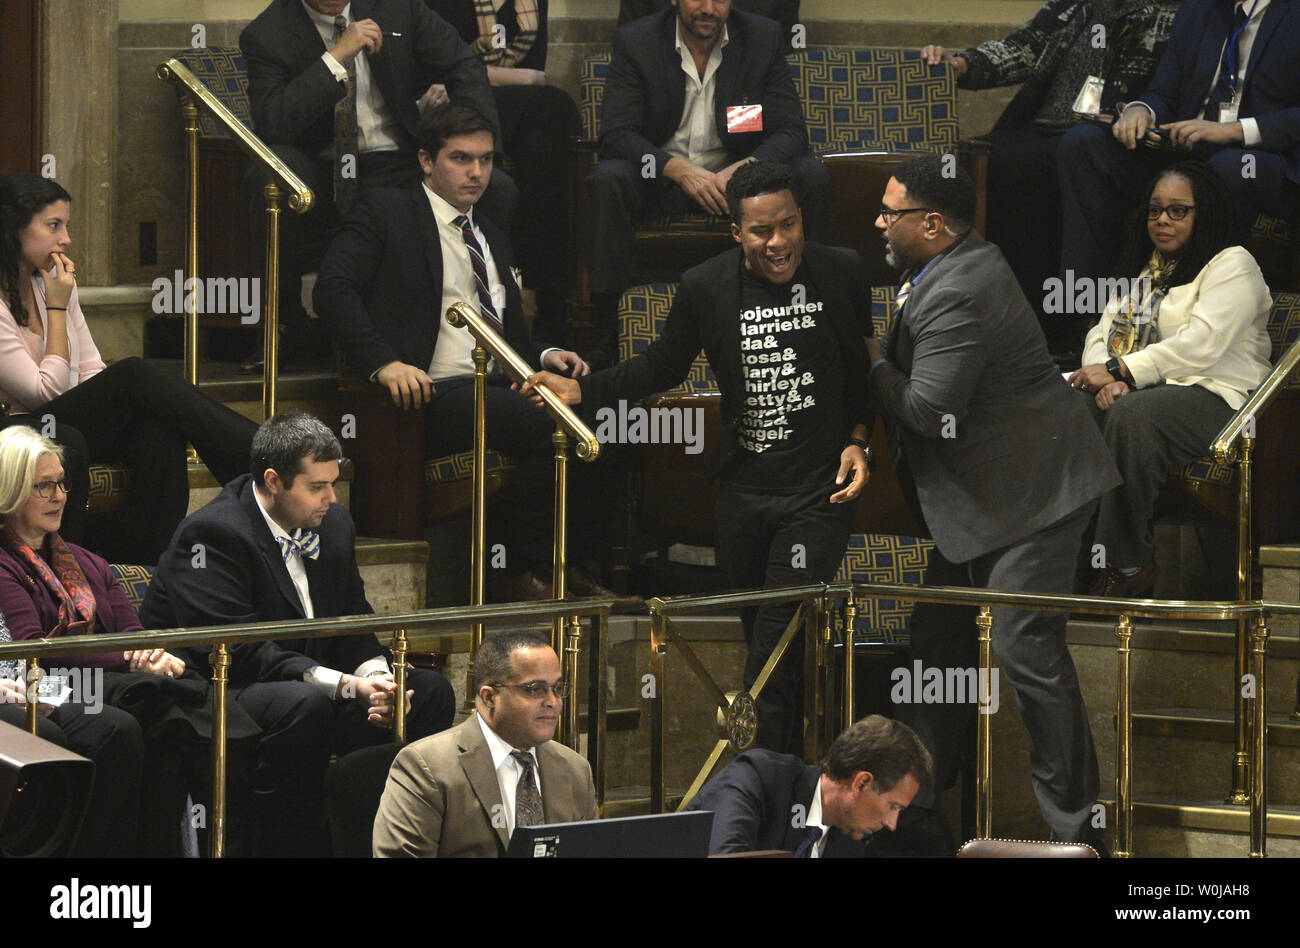 A demonstrator shouts in protest as he is removed from the House Gallery during the procedure to count and validate the votes of the Electoral College on the floor of the House at the U.S. Capitol, January 6, 2017, in Washington, DC. She was ruled out of order and the procedure, established by the Constitution, finalized Donald J. Trump and Mike Pence as the president and vice president.                 Photo by Mike Theiler/UPI - Stock Image